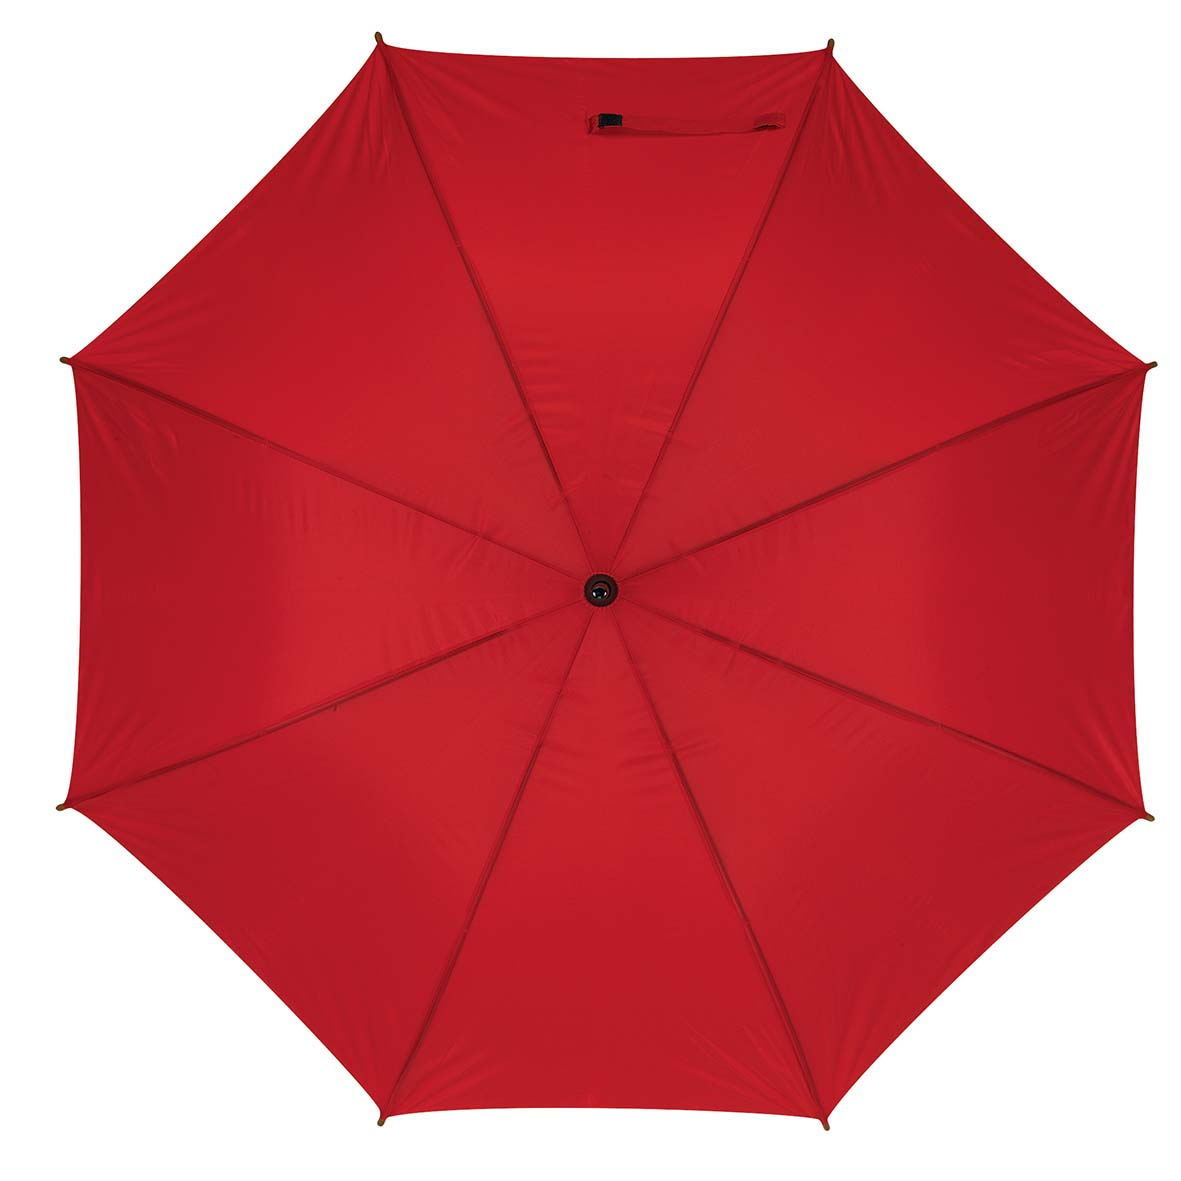 Automatic wooden stick umbrella - Red ns-927 r